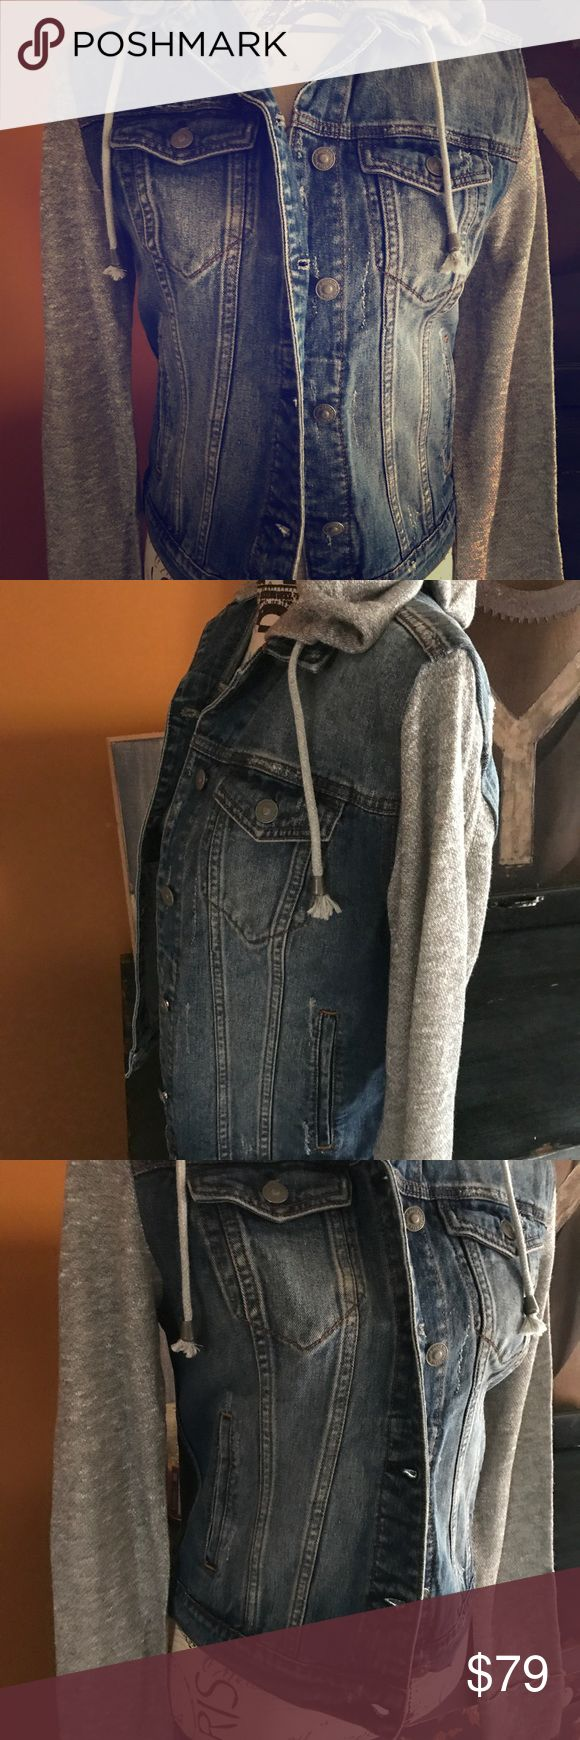 NWT Silver Jeans Hooded Jean Jacket Small NWT Silver Jeans Hooded Jean/Sweater Jacket,size Small. PRICE IS FIRM.. Silver Jeans Jackets & Coats Jean Jackets